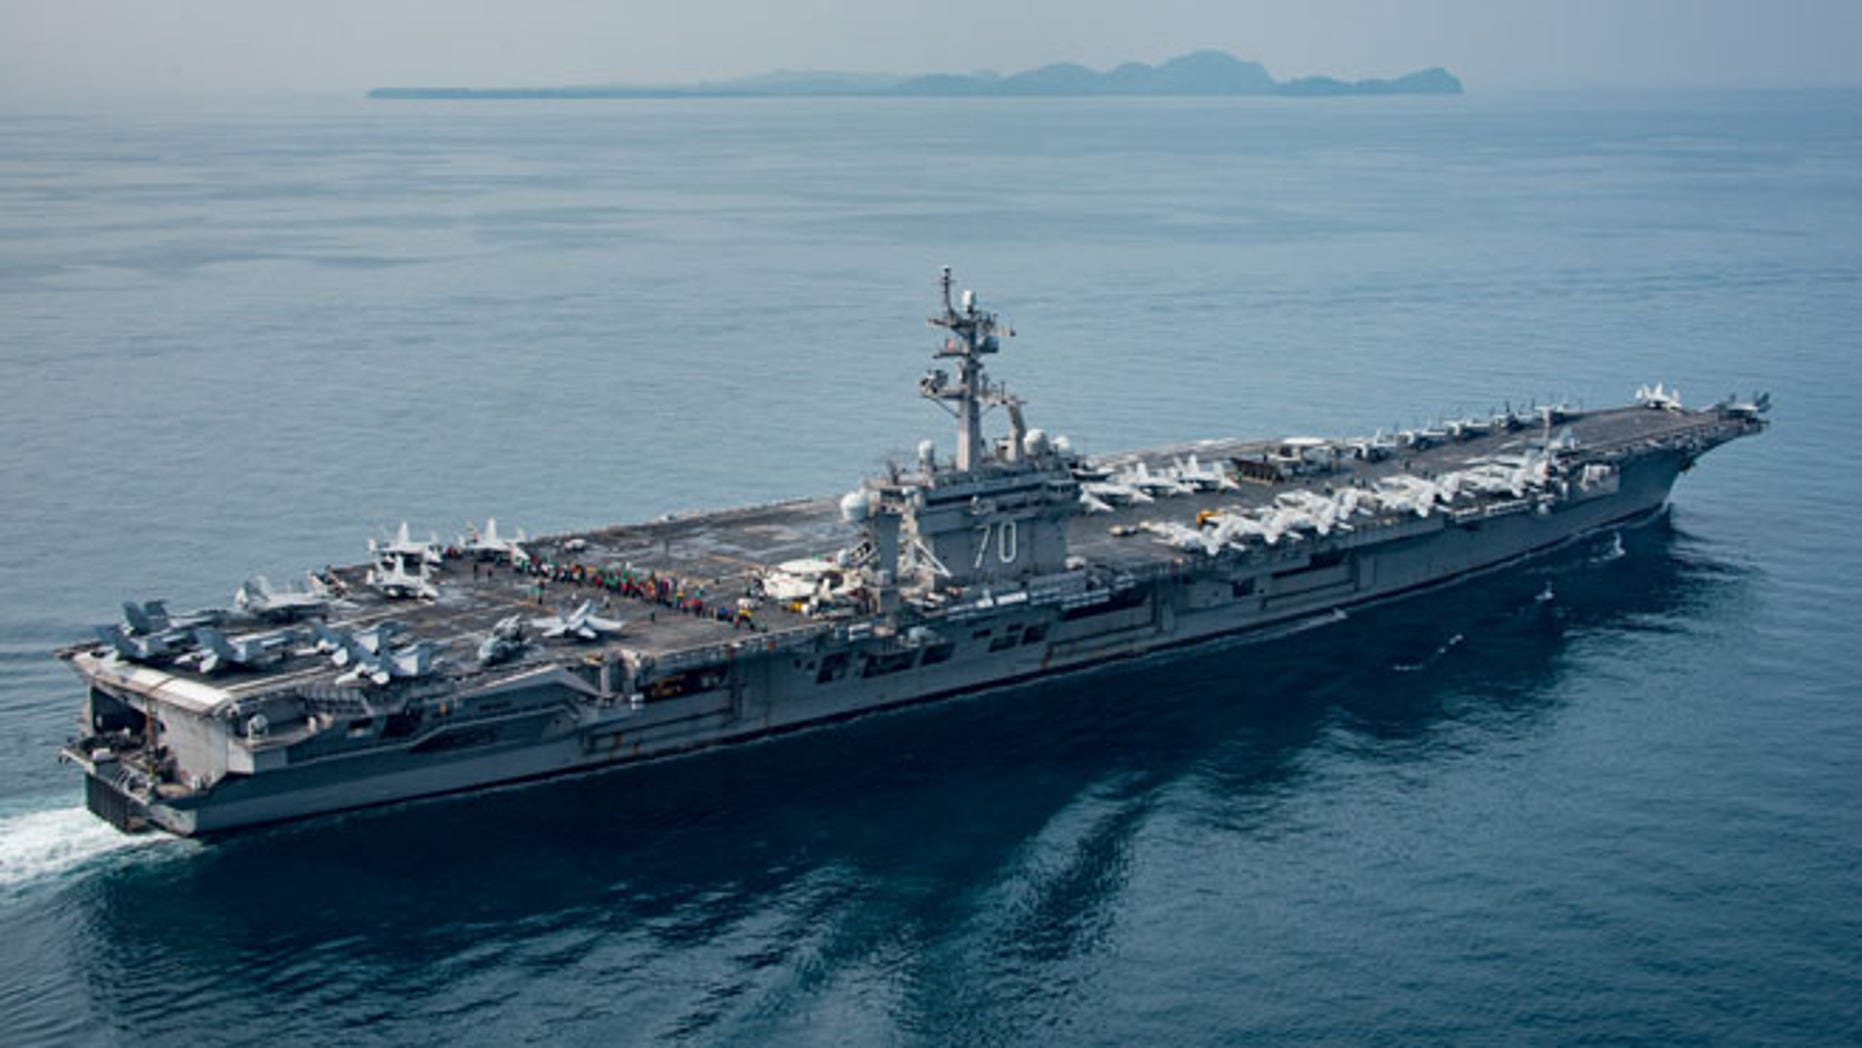 USS Carl Vinson in the Sunda Strait in Indonesia on Friday